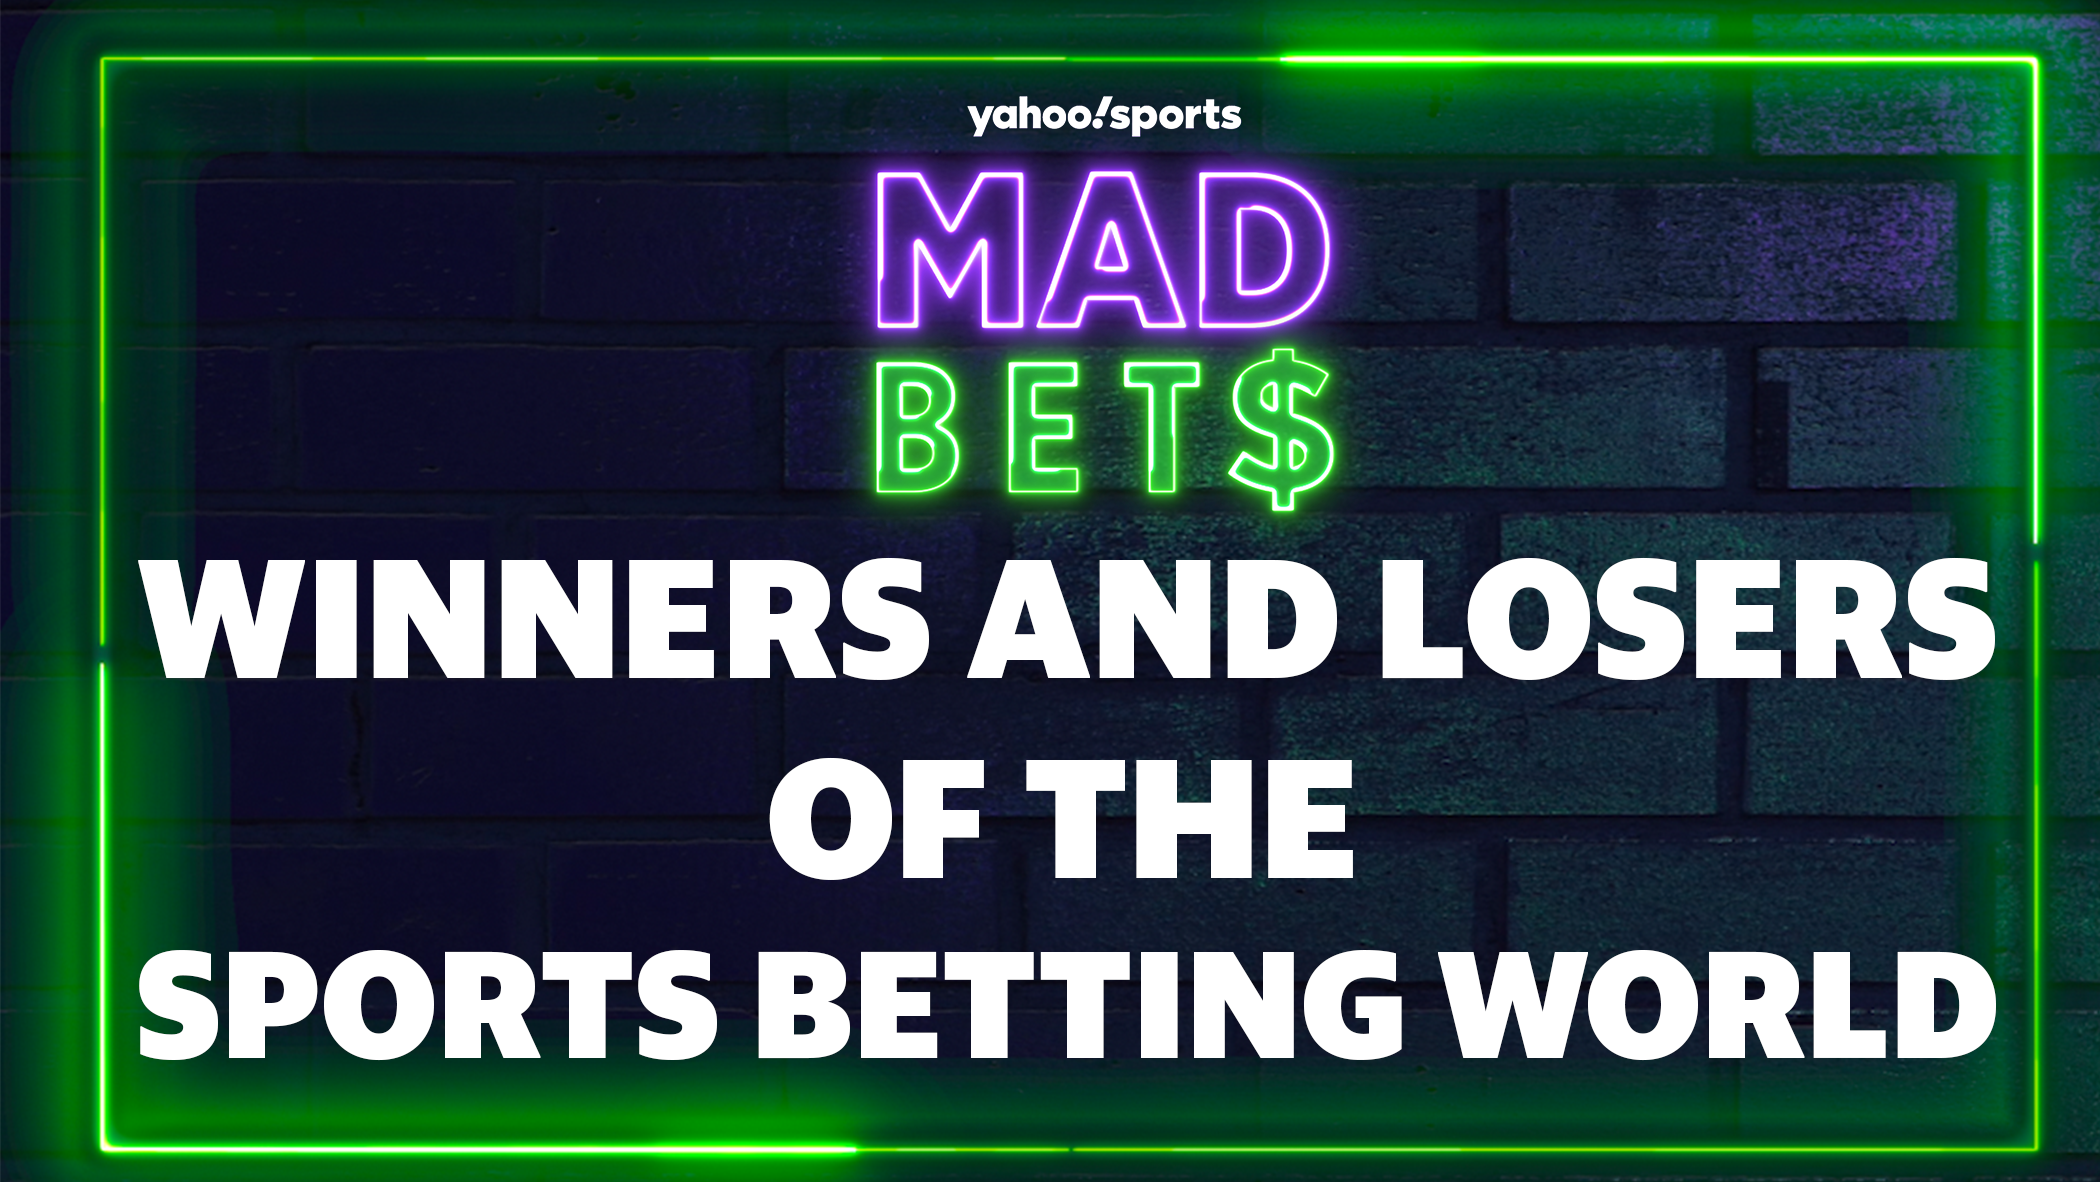 black uniforms and aggression in professional sports betting